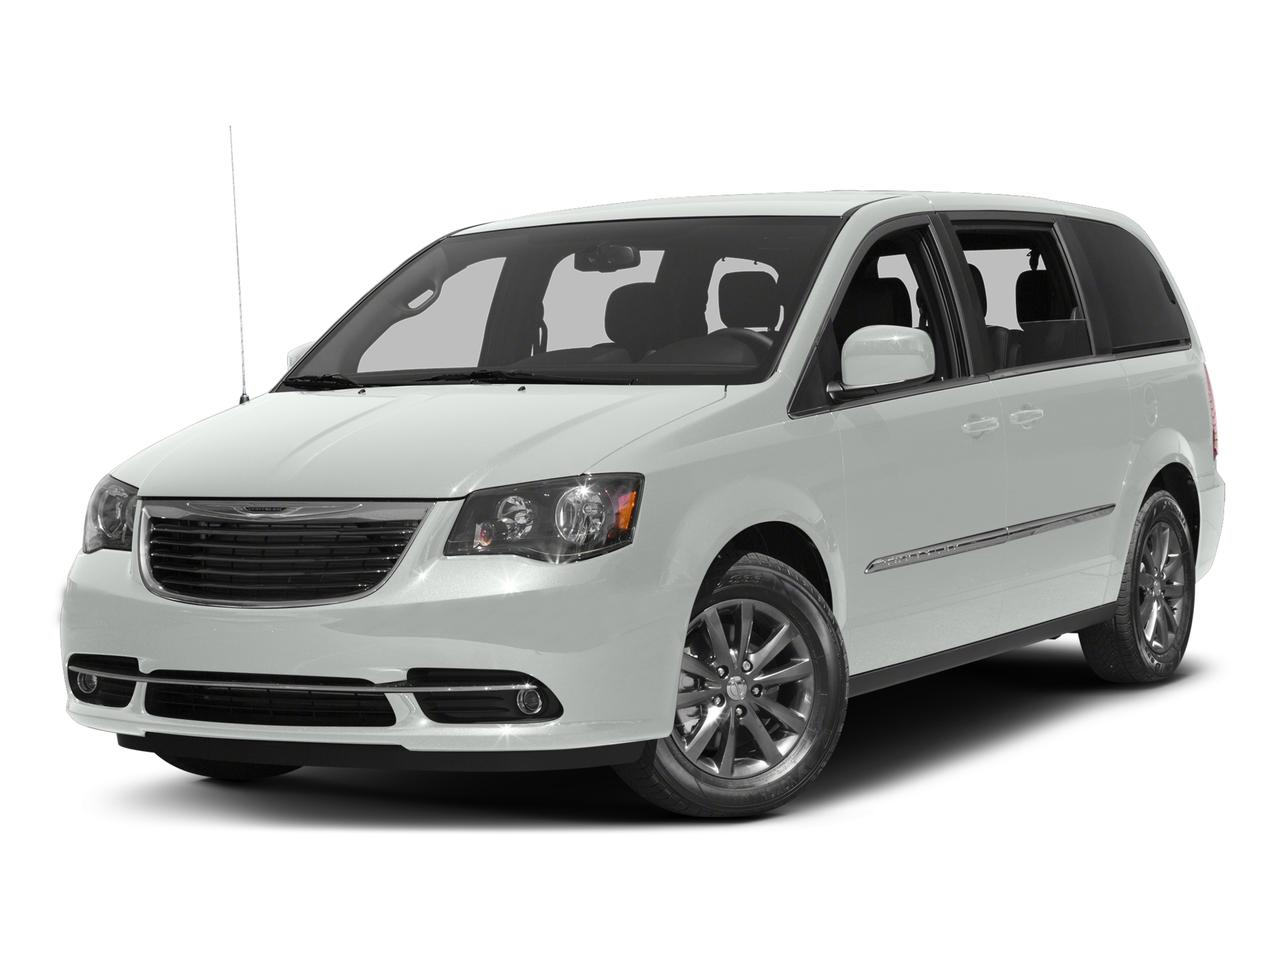 2016 Chrysler Town & Country Vehicle Photo in Corpus Christi, TX 78411